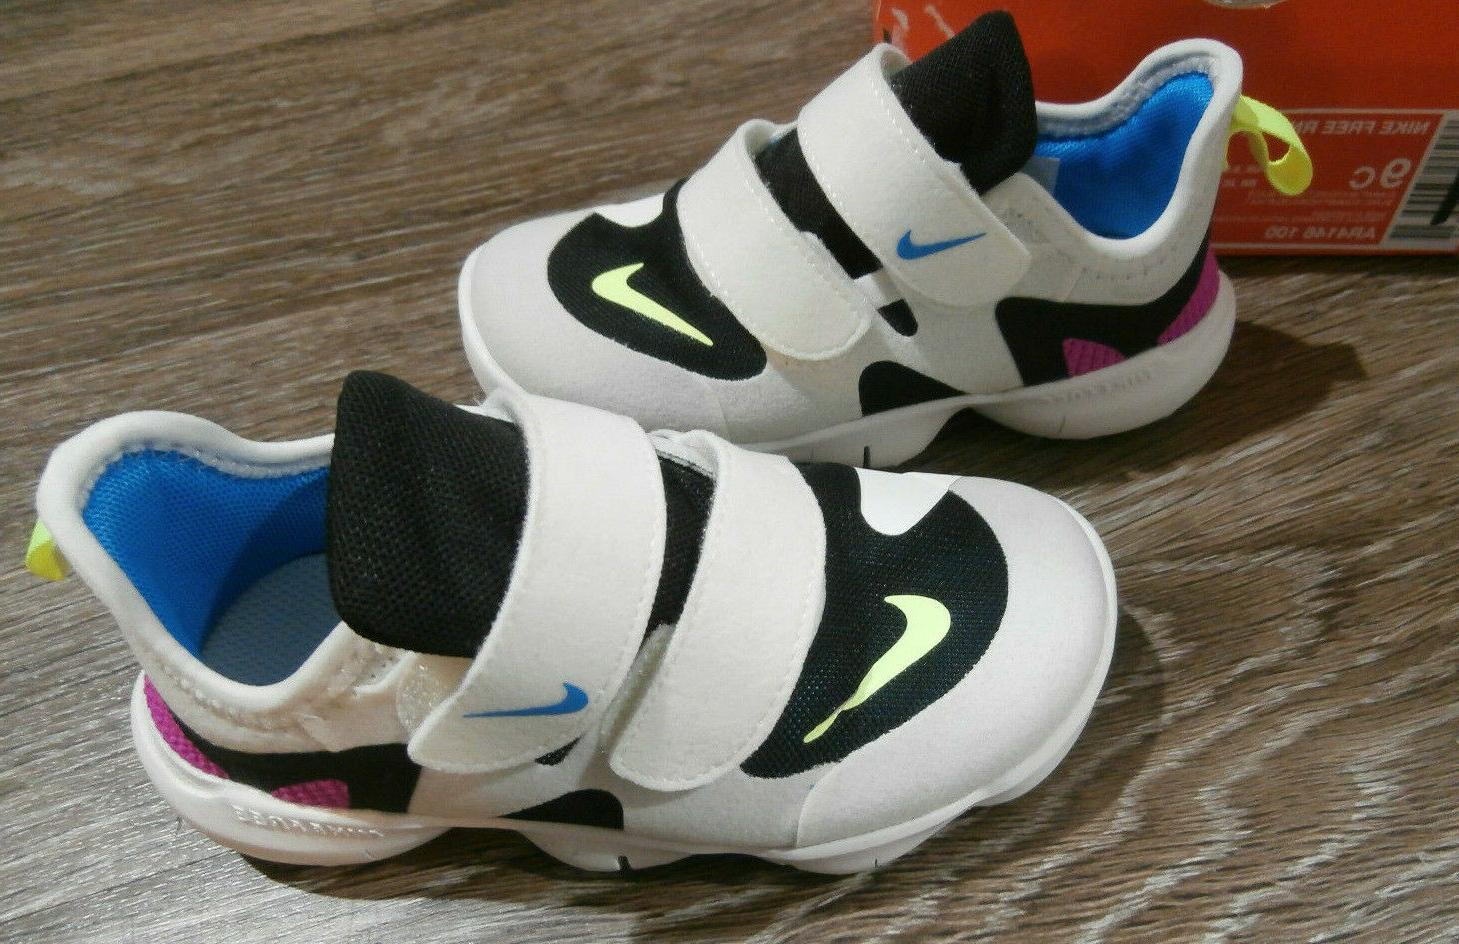 Nike infant shoes size Free RN 5.0. &